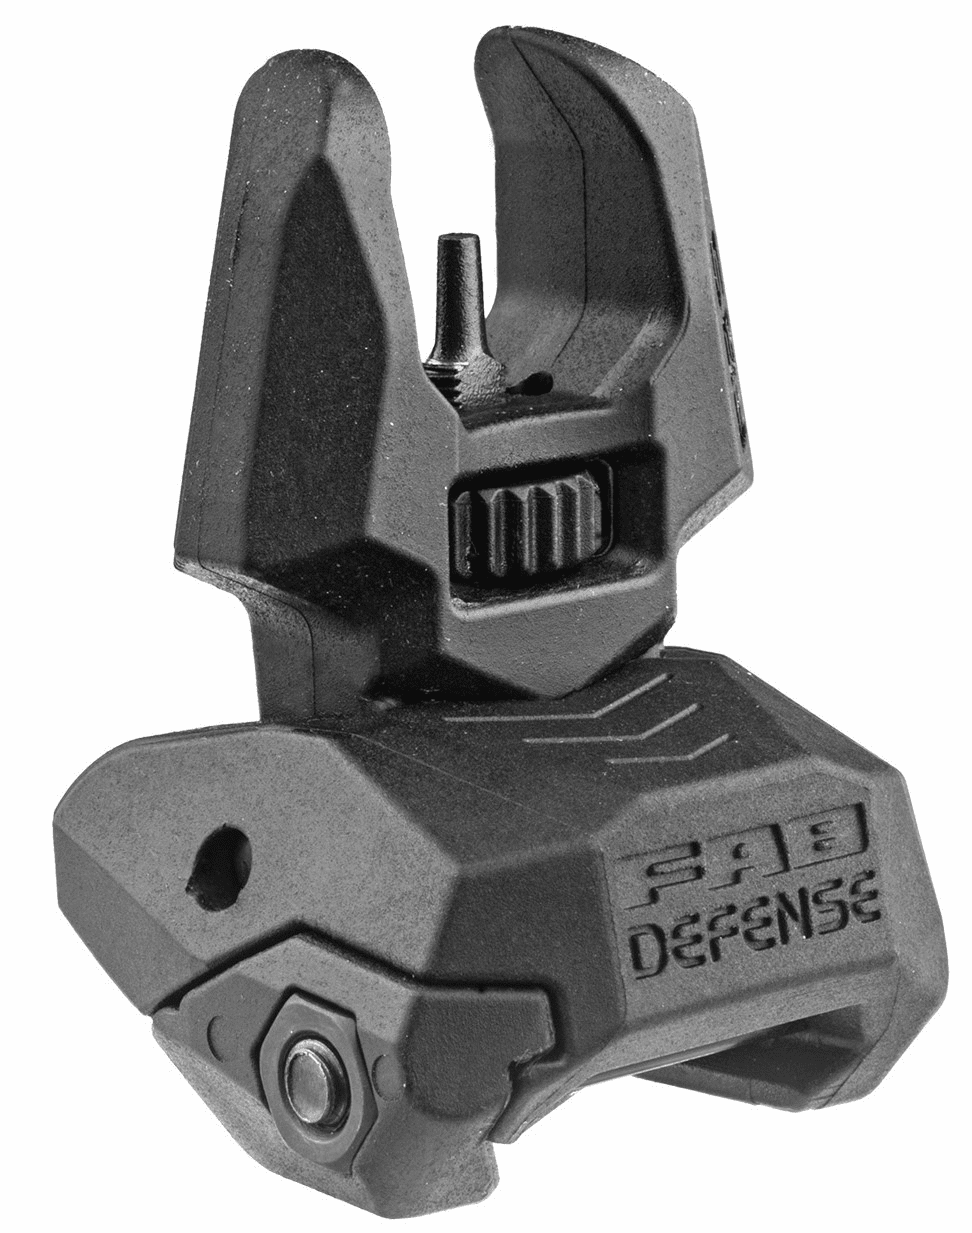 FAB Defense Poly Flip Up Front Sight - FX-FBS